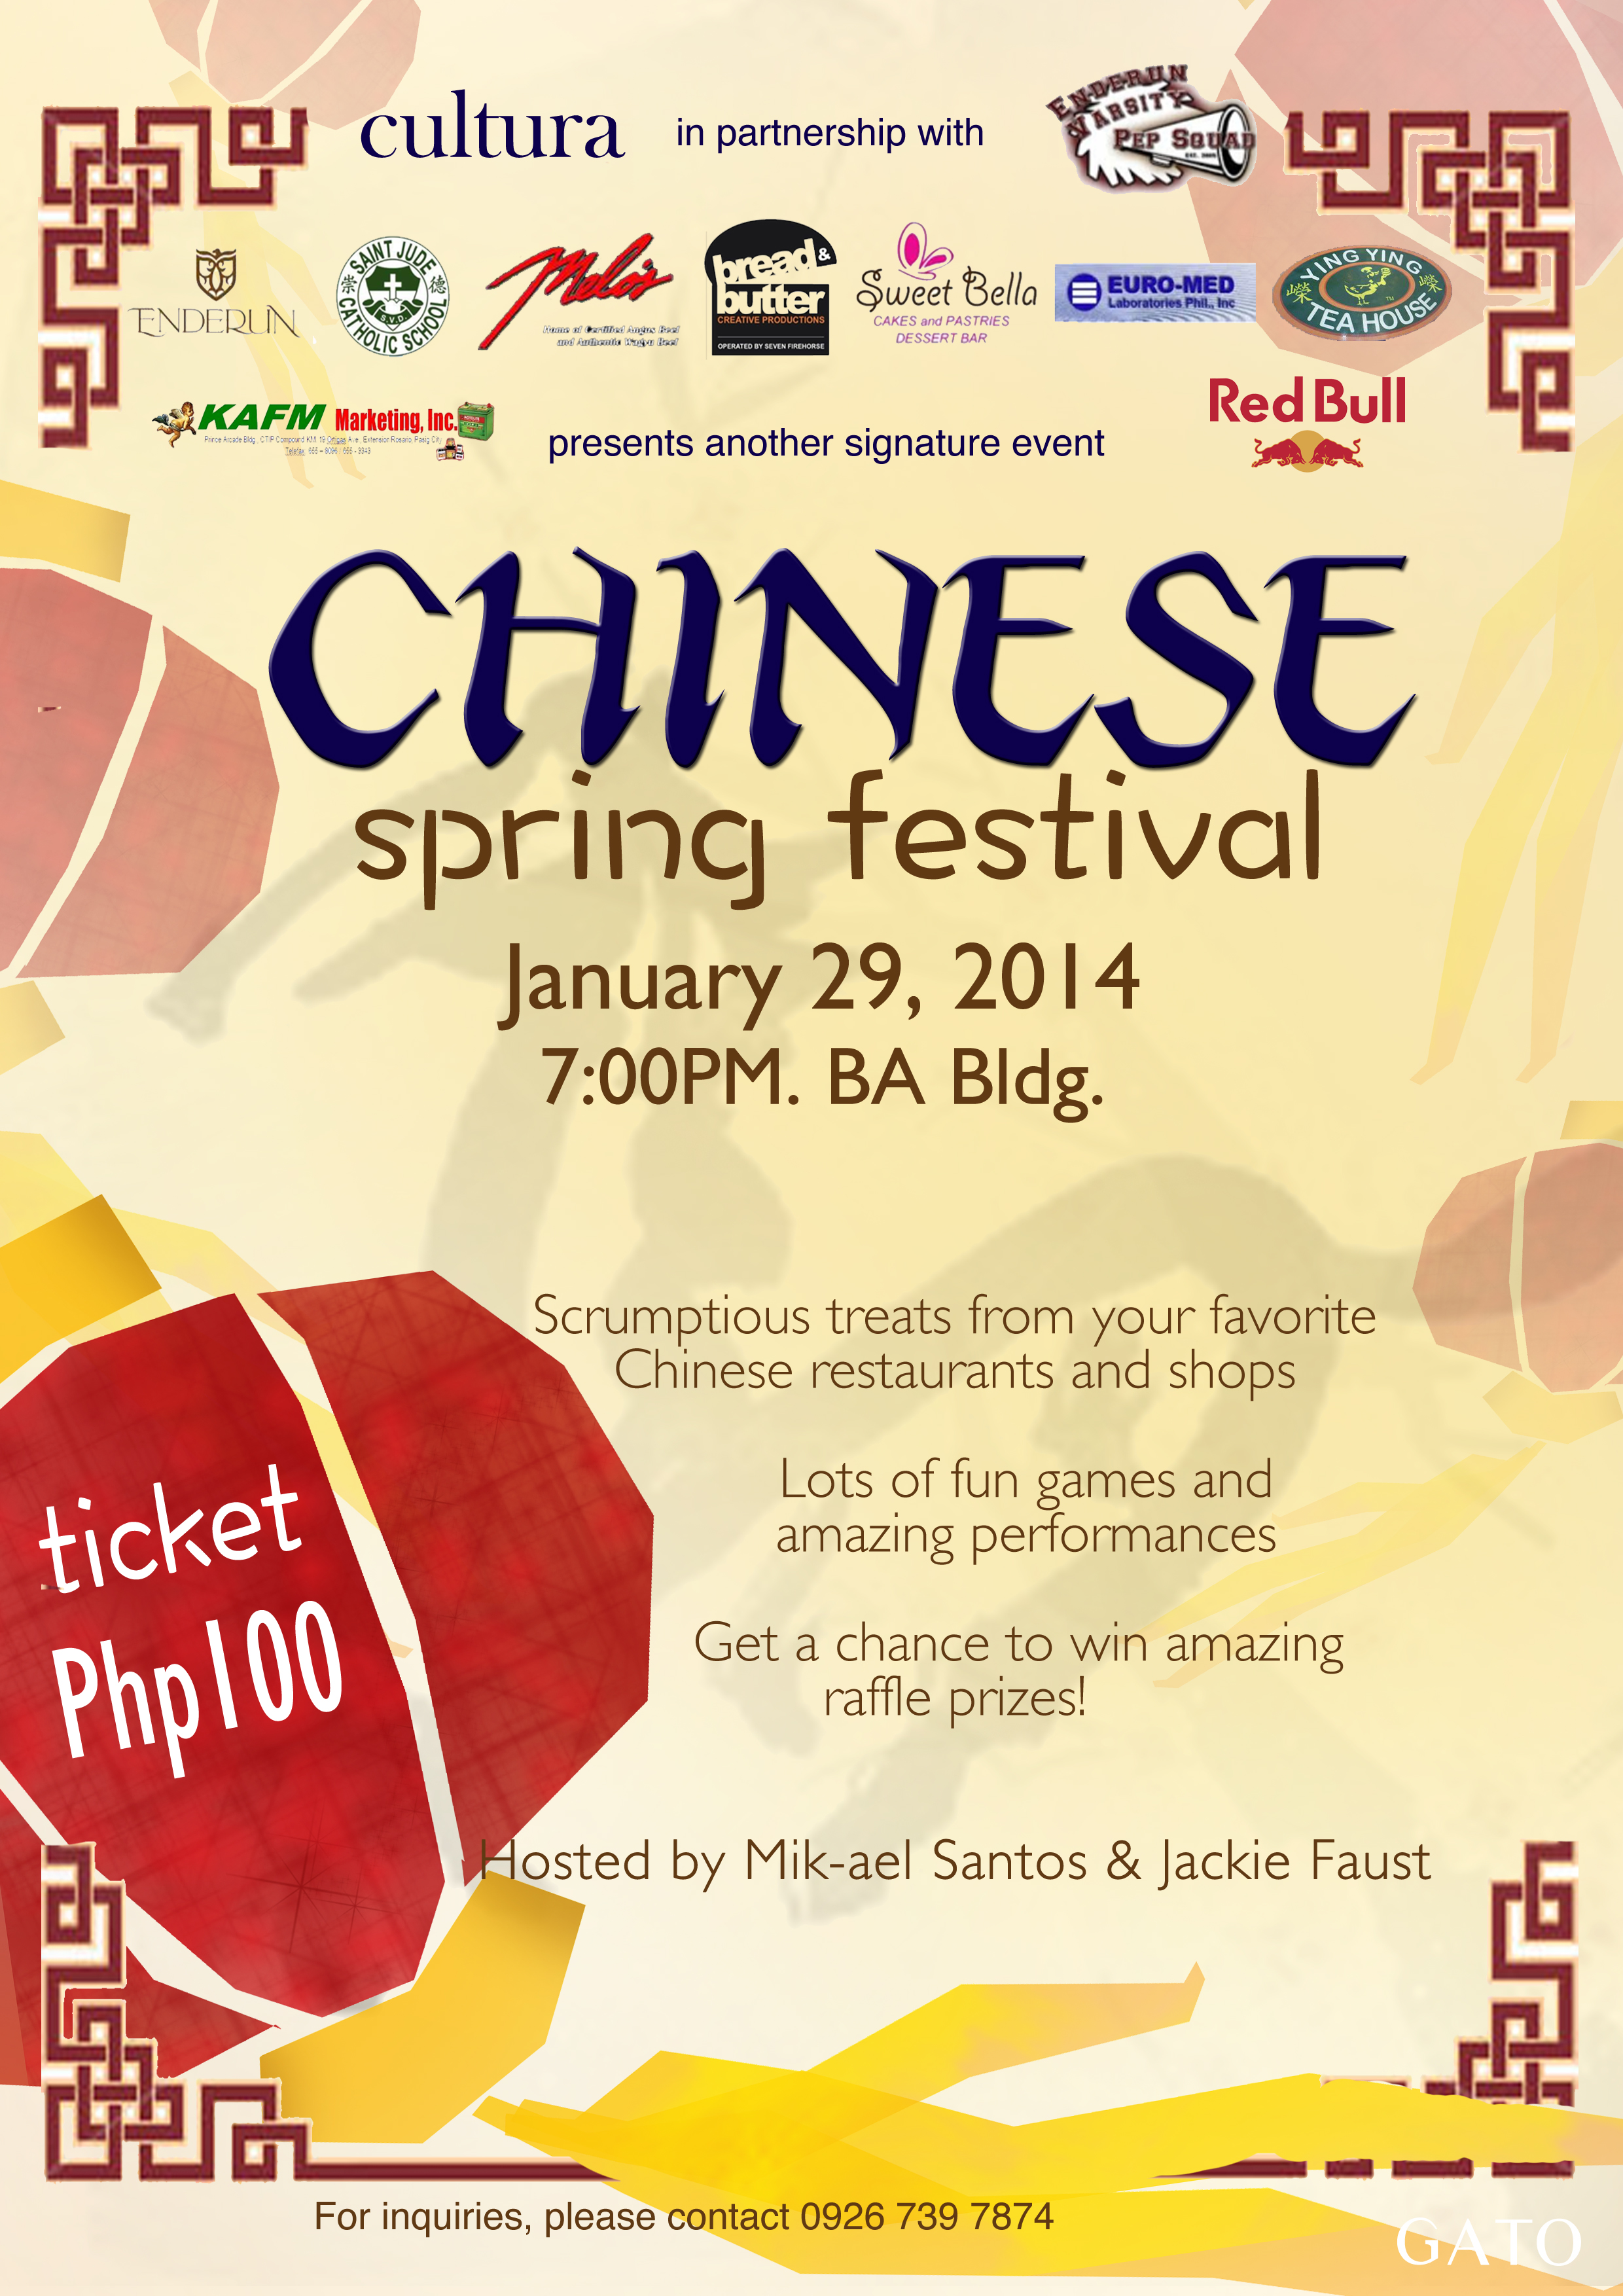 Chinese Spring Festival 2014 Ink Enderun